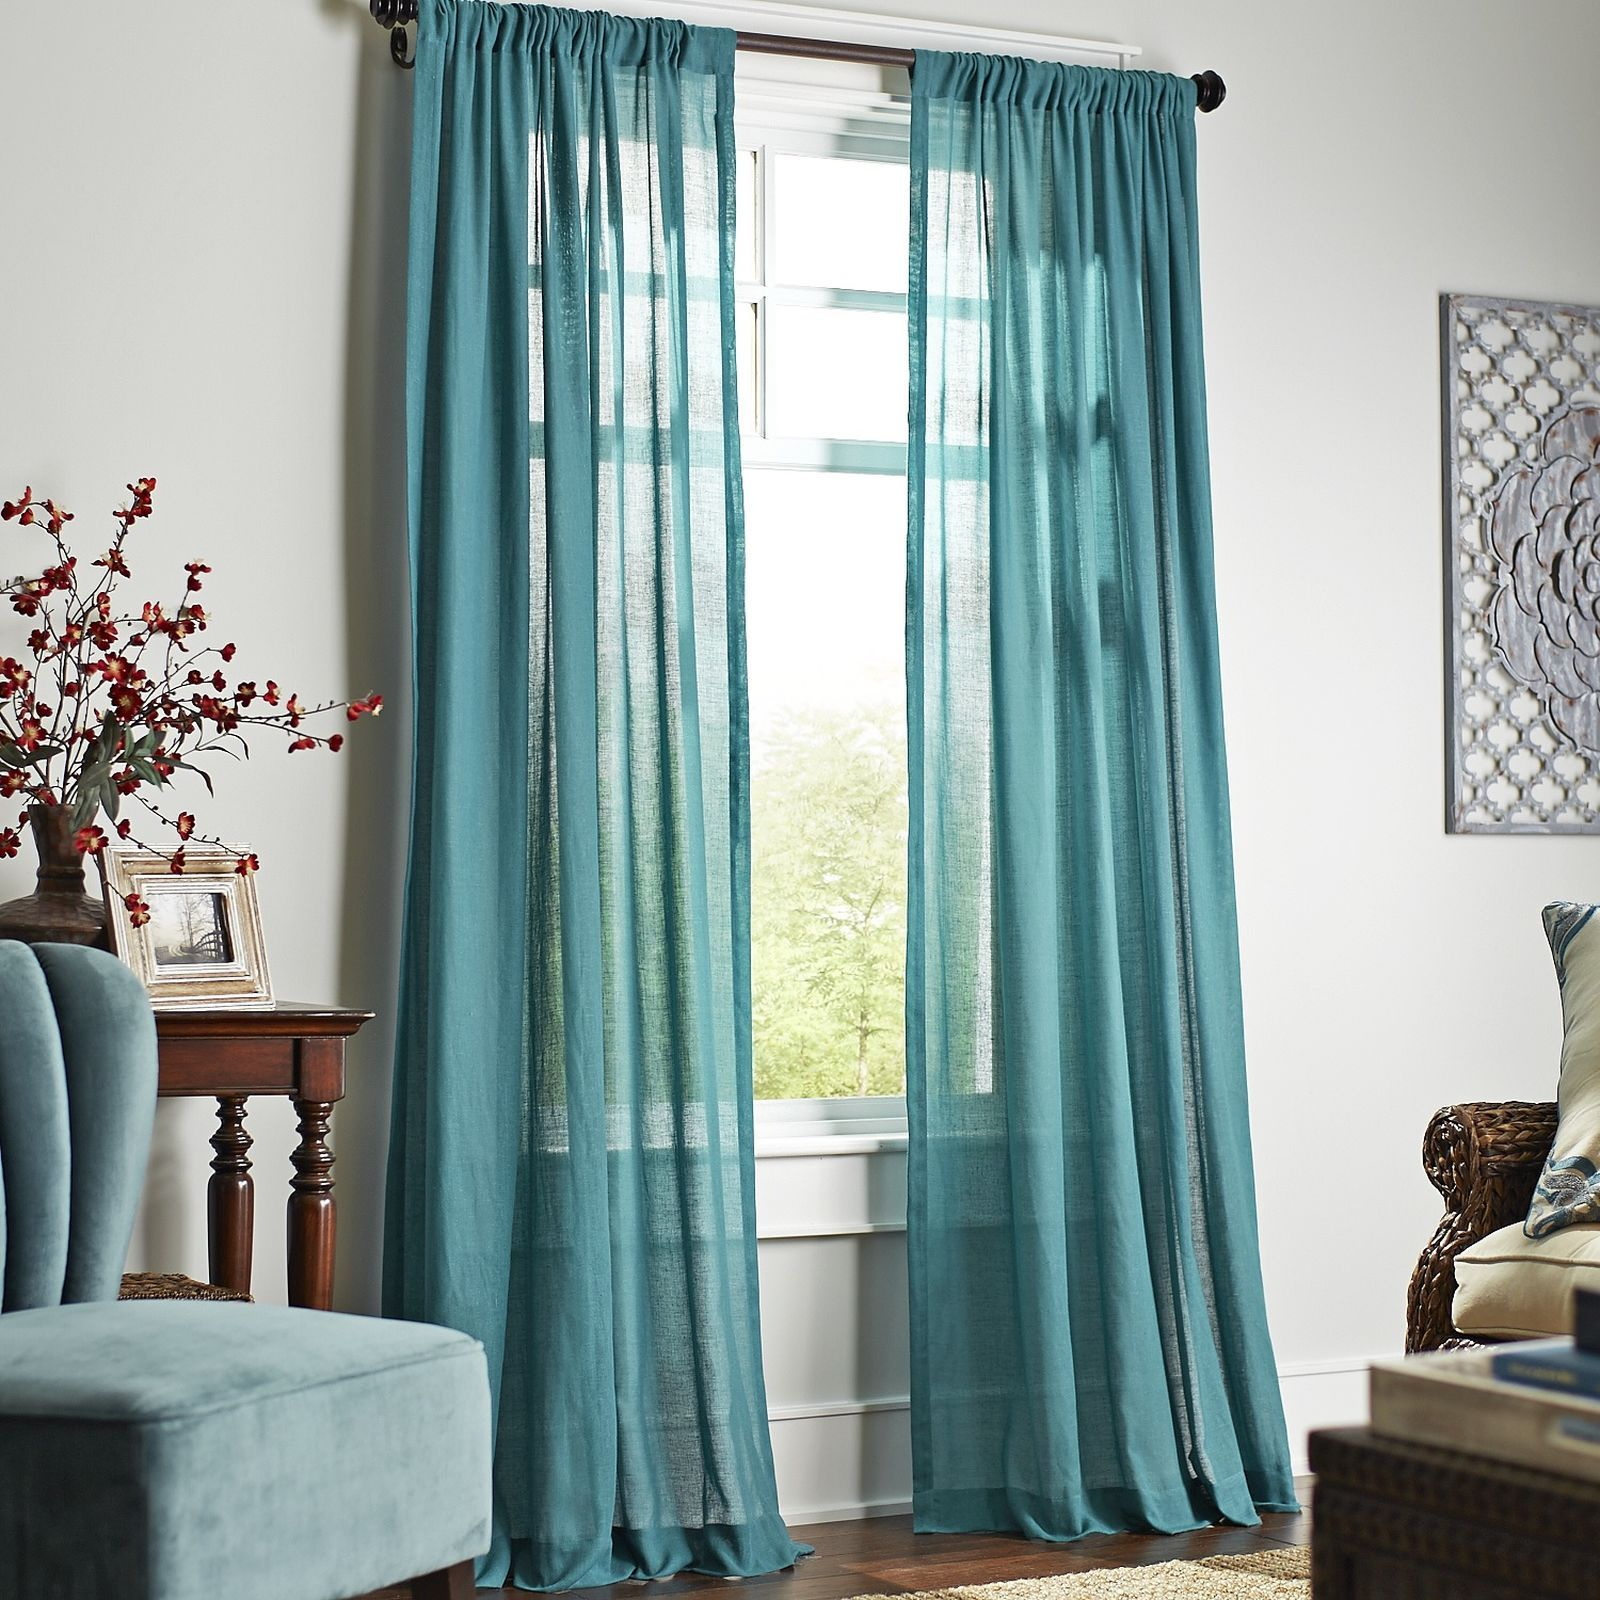 Quinn Sheer Curtain Teal Pier 1 Imports Turquoise Curtains